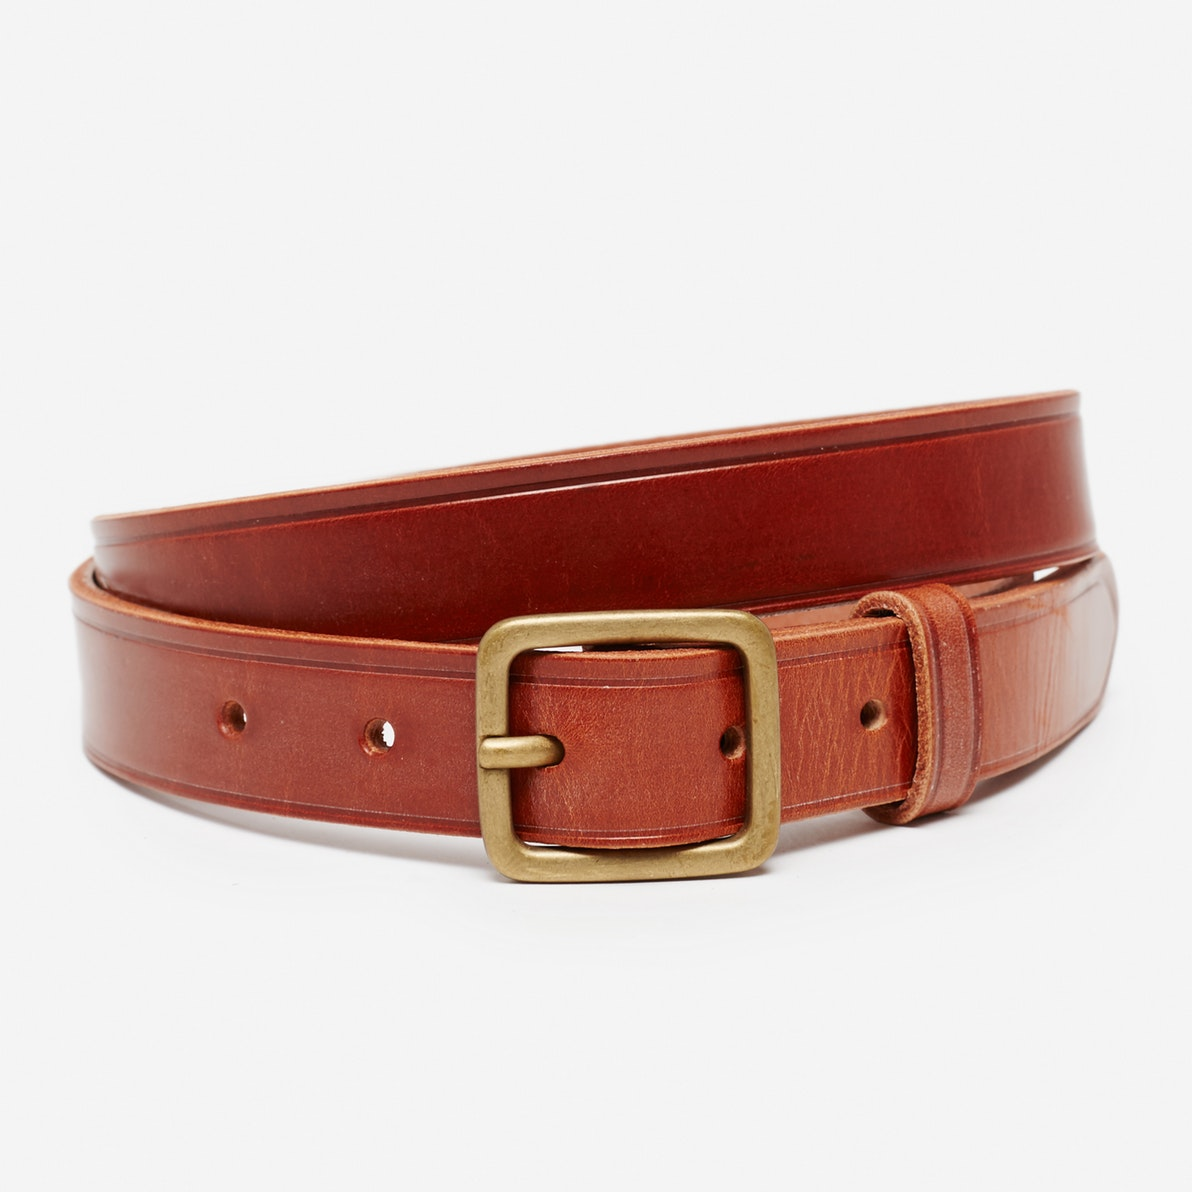 BELT_NarrowLeatherDressBelt_Cognac_hero1.jpg